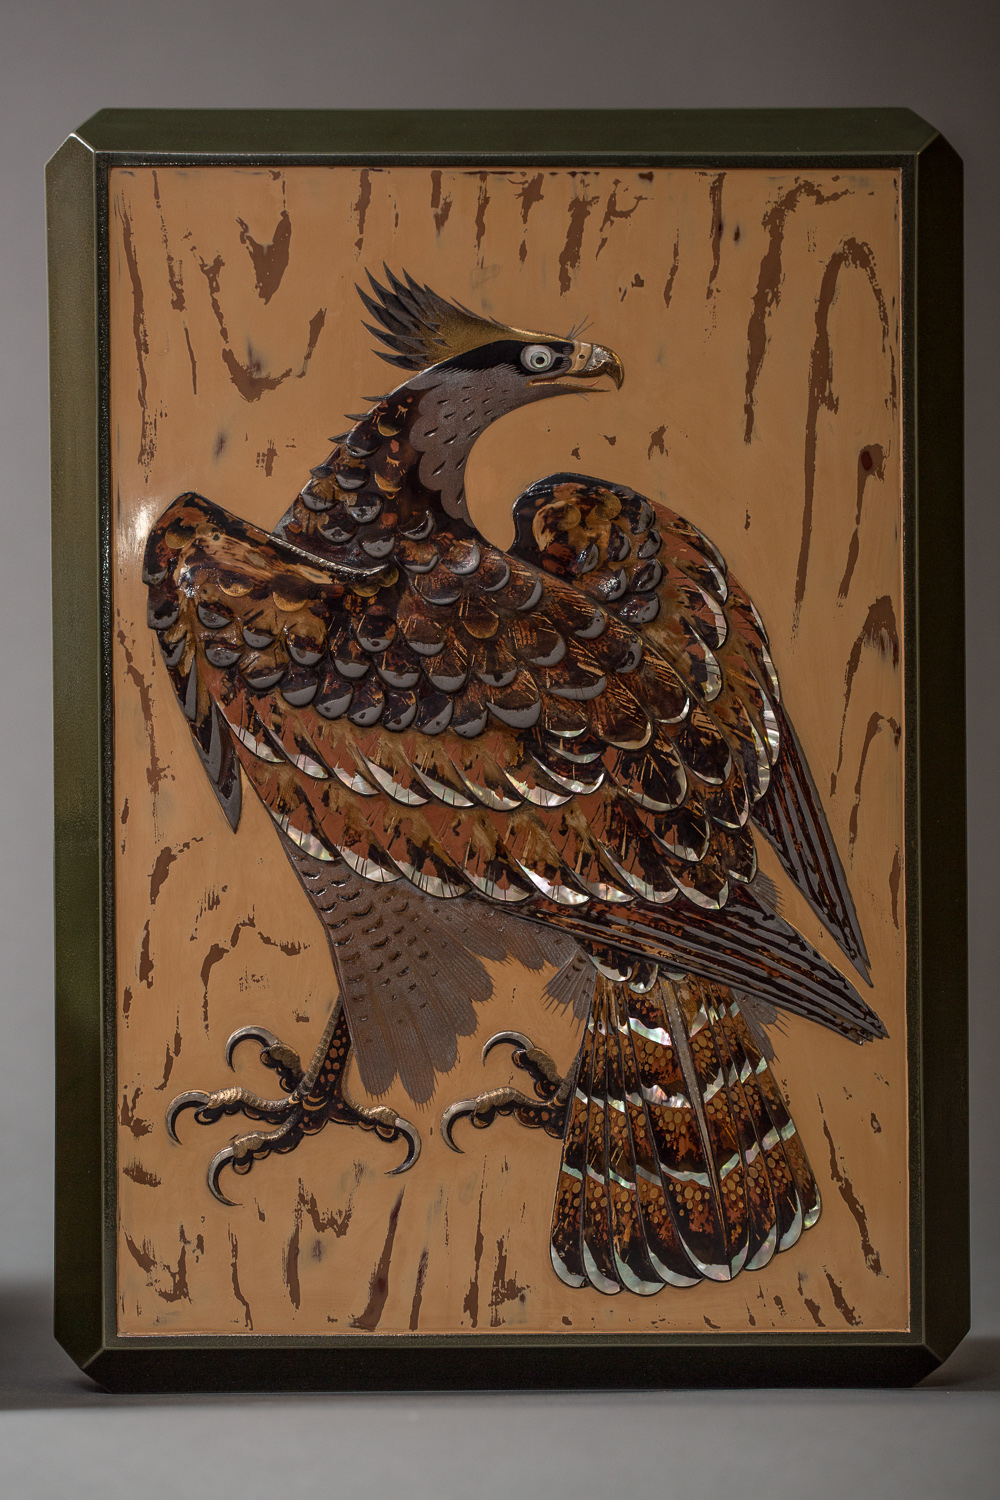 Japanese Antique Lacquer Document Box with Elaborate Hawk and Oak Design